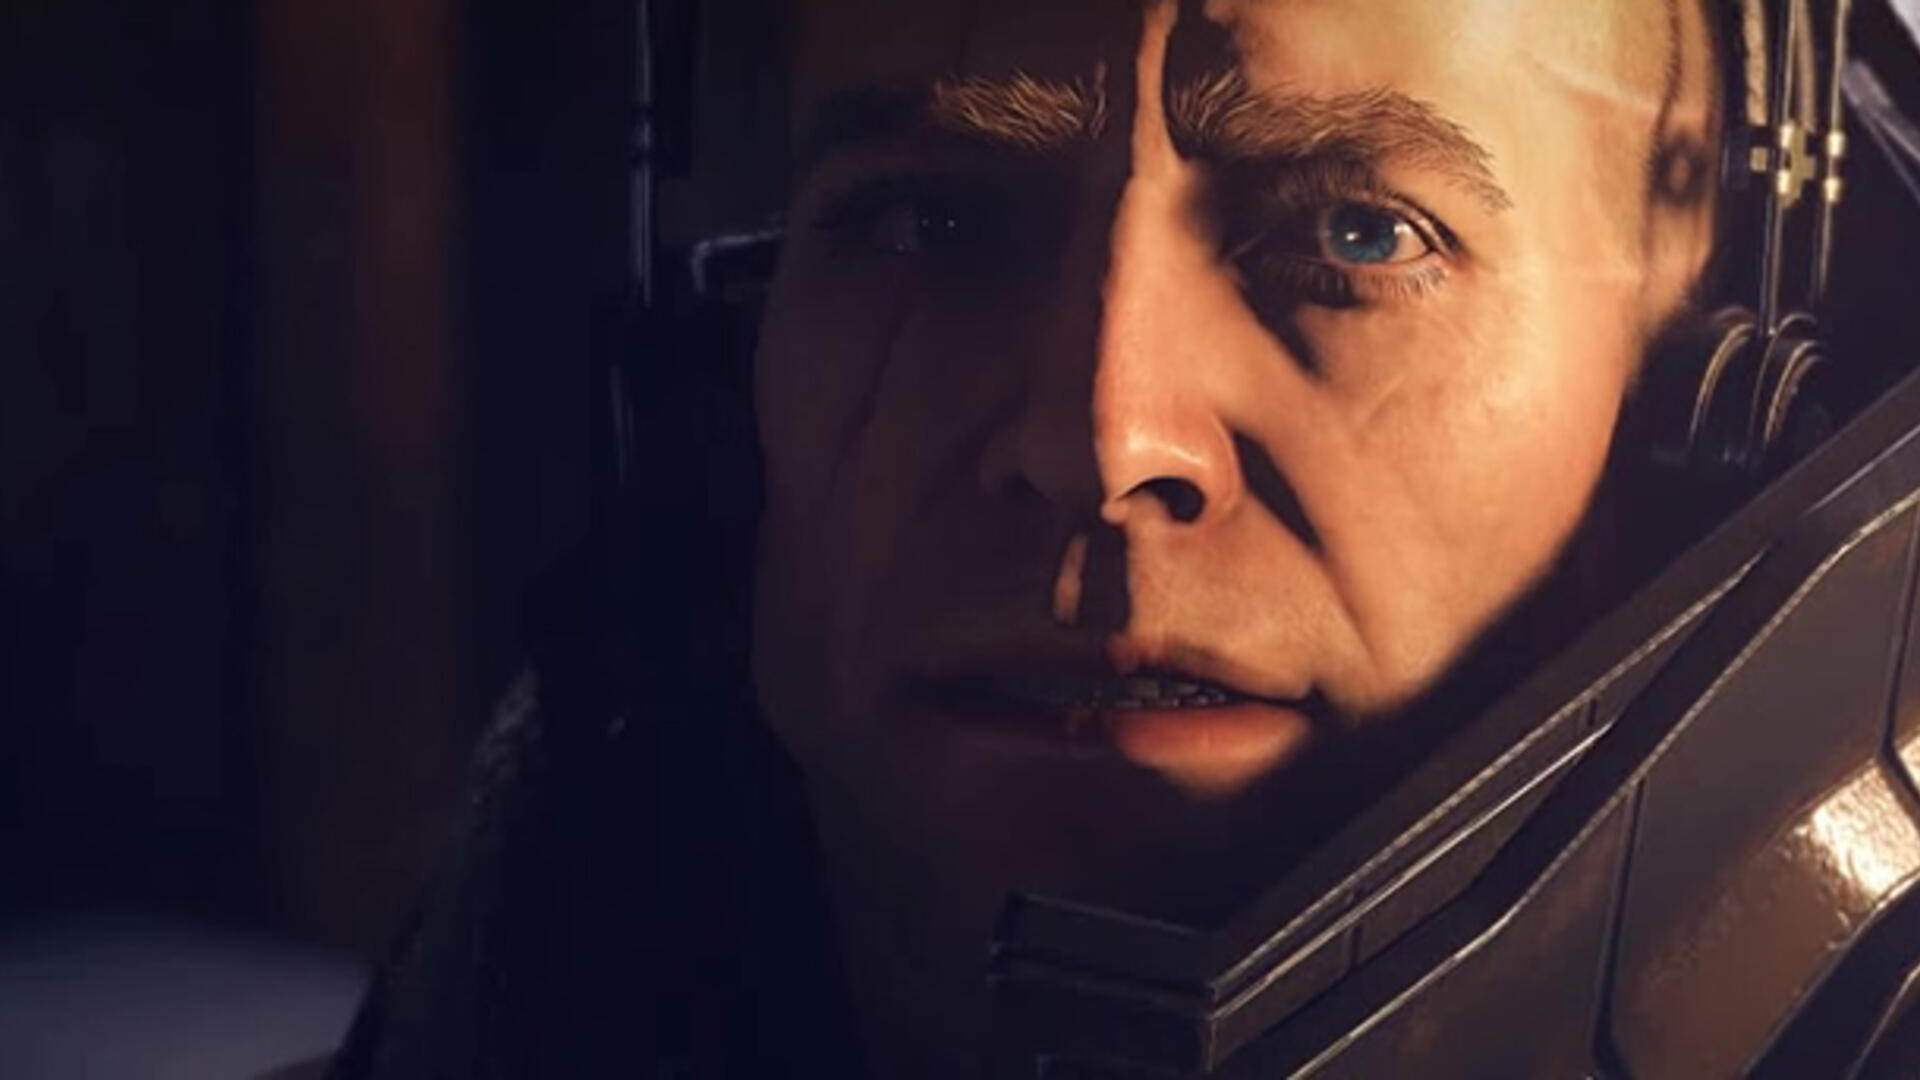 Wolfenstein 2 Switch Confirmed to Have Motion Controls at Launch